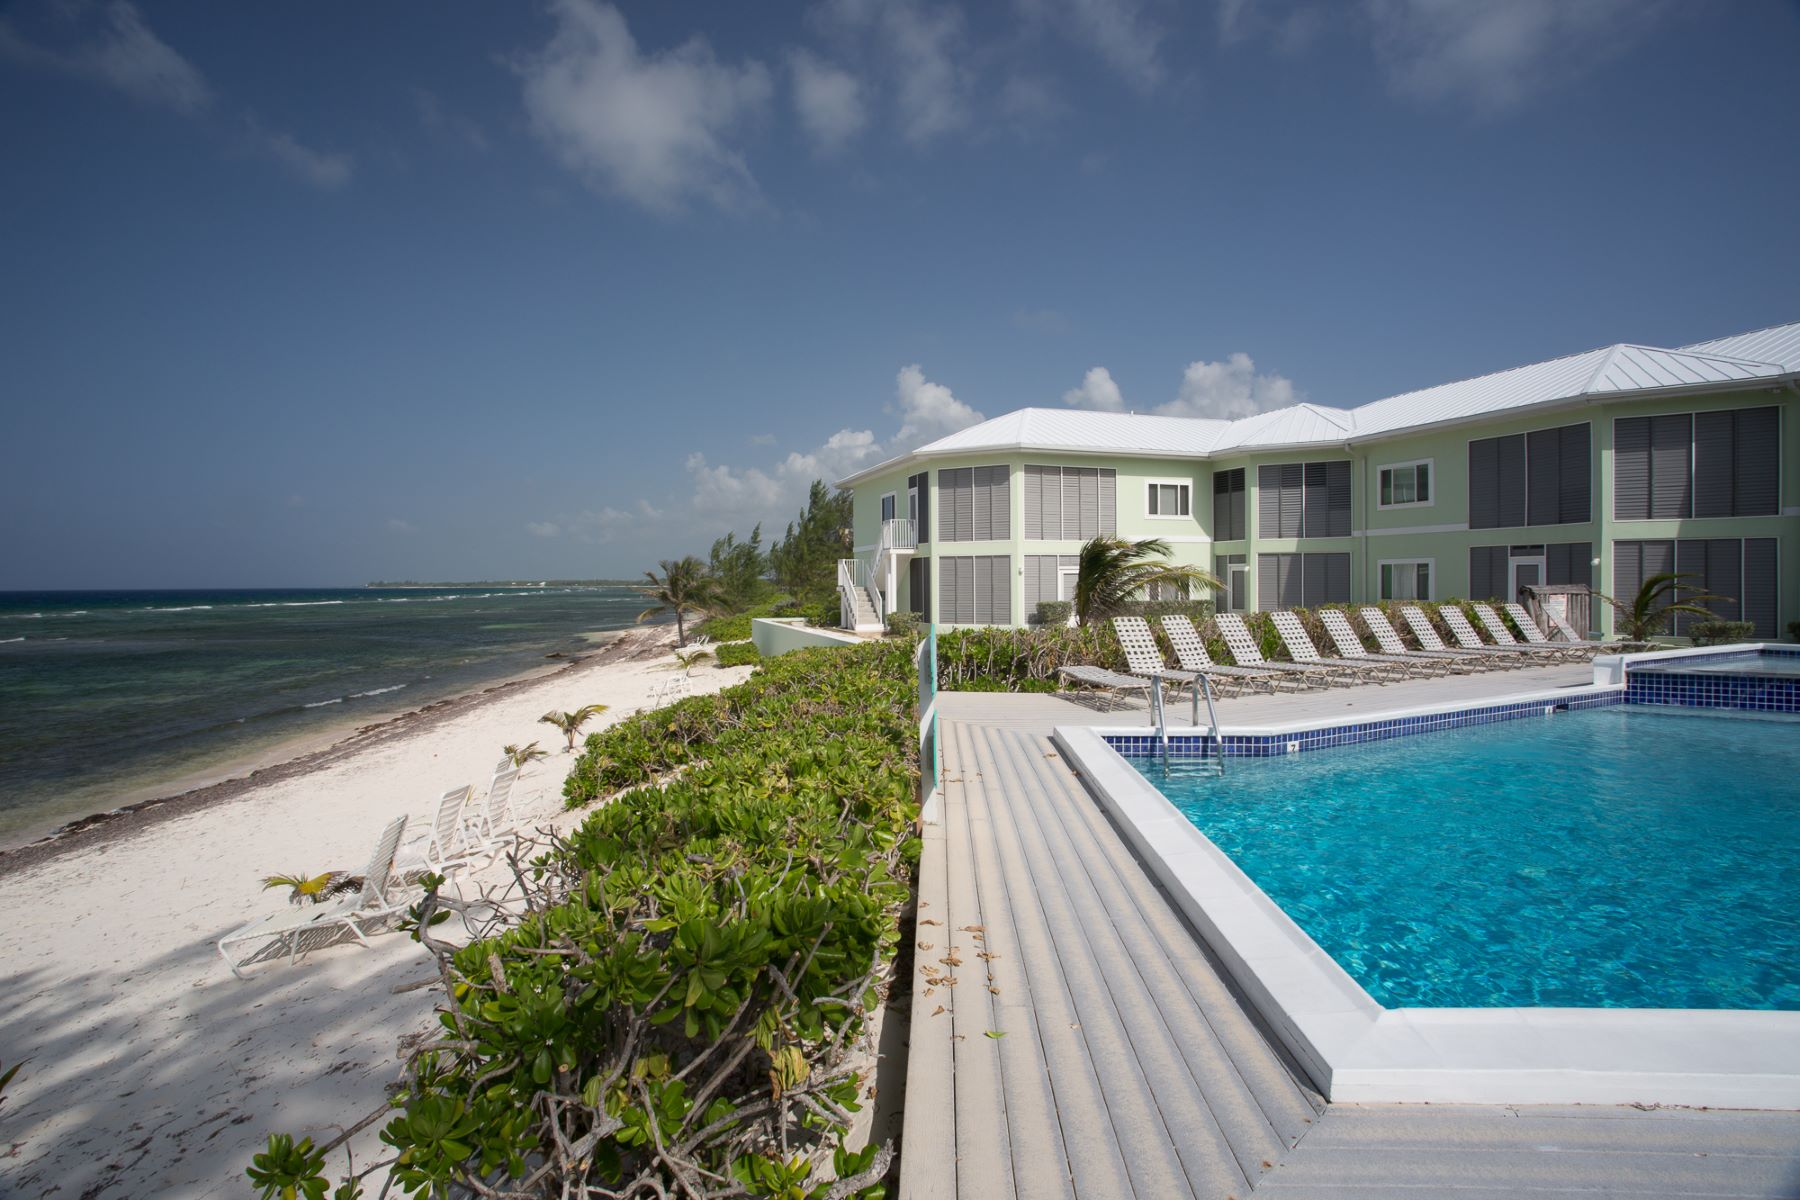 Condominium for Sale at North Pointe Condos Rum Point, Grand Cayman, Cayman Islands